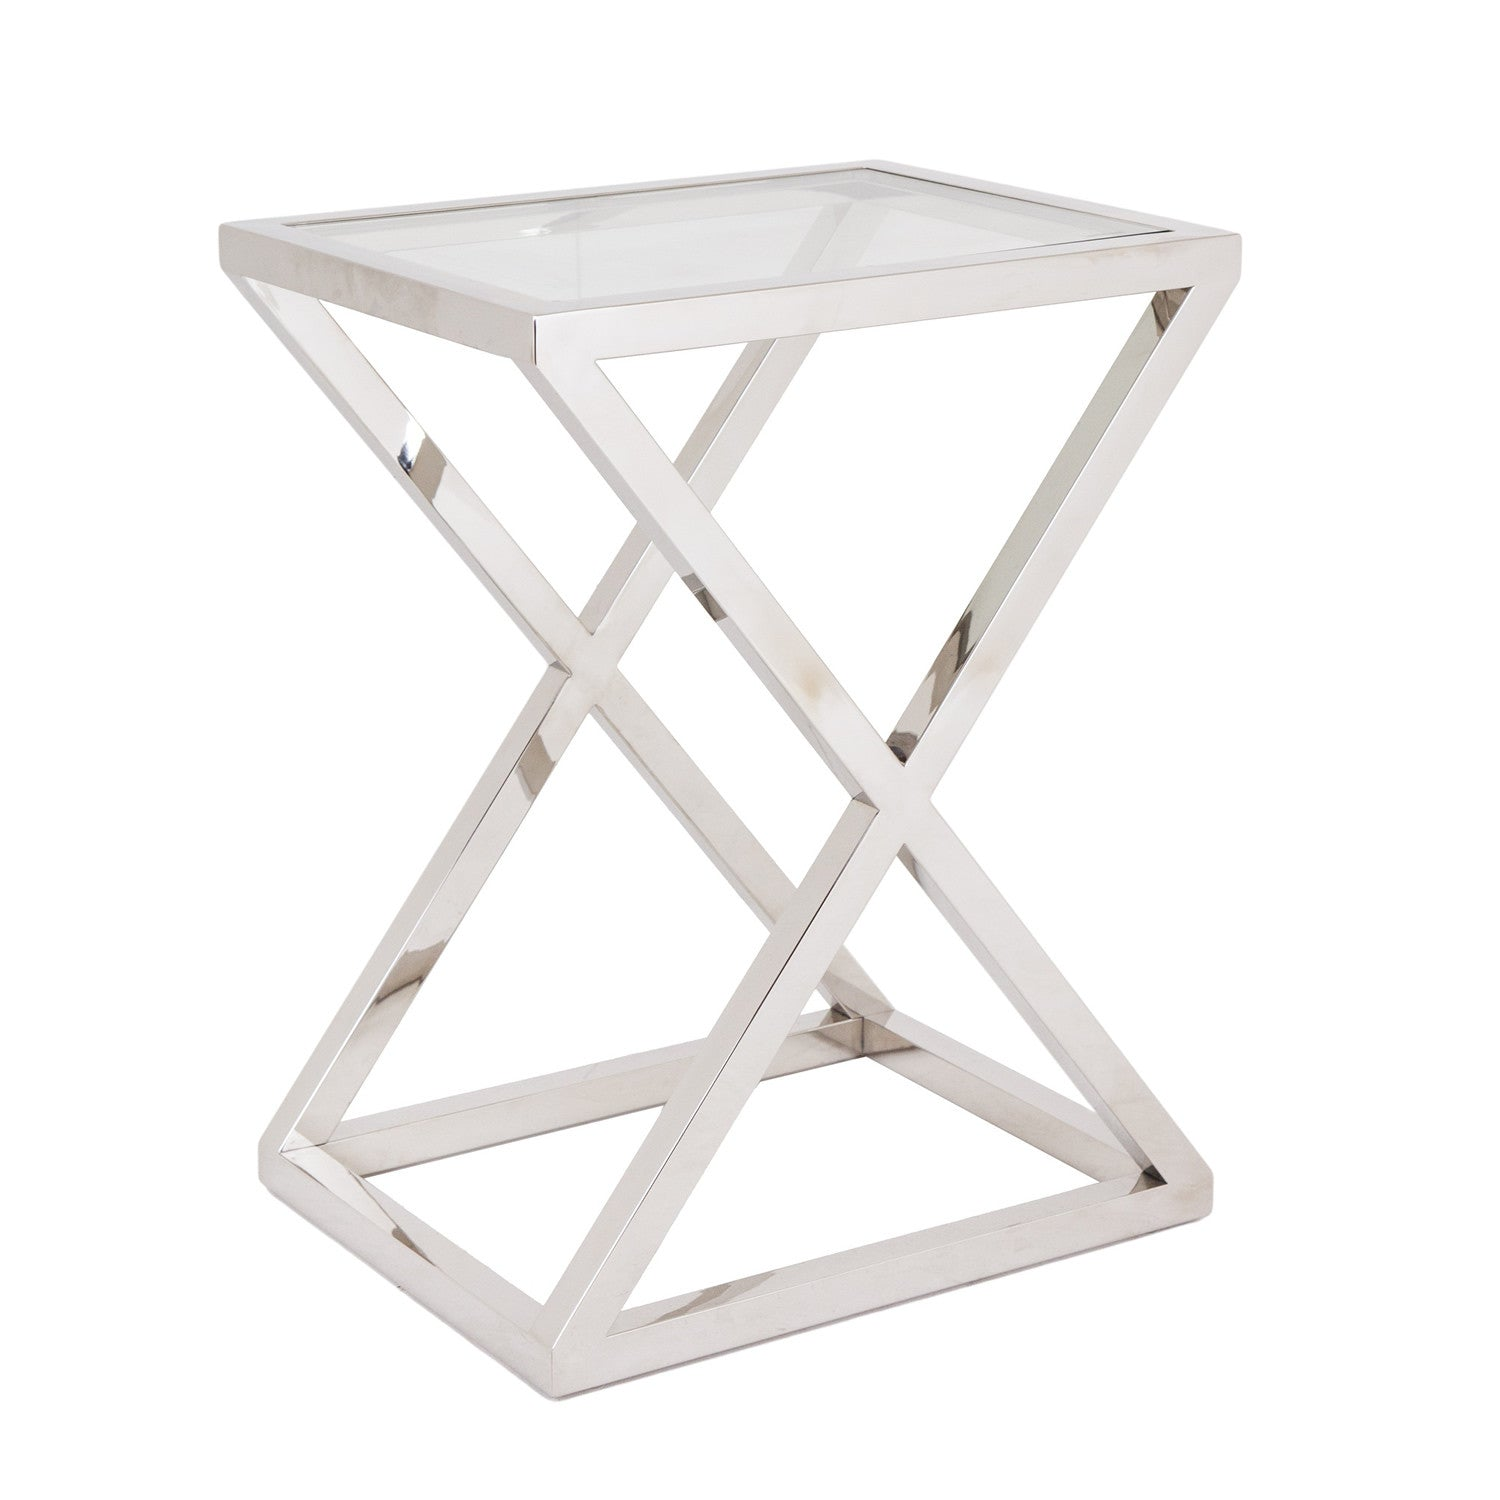 RV Astley Nico Stainless Steel & Glass Side Table – Shropshire Design